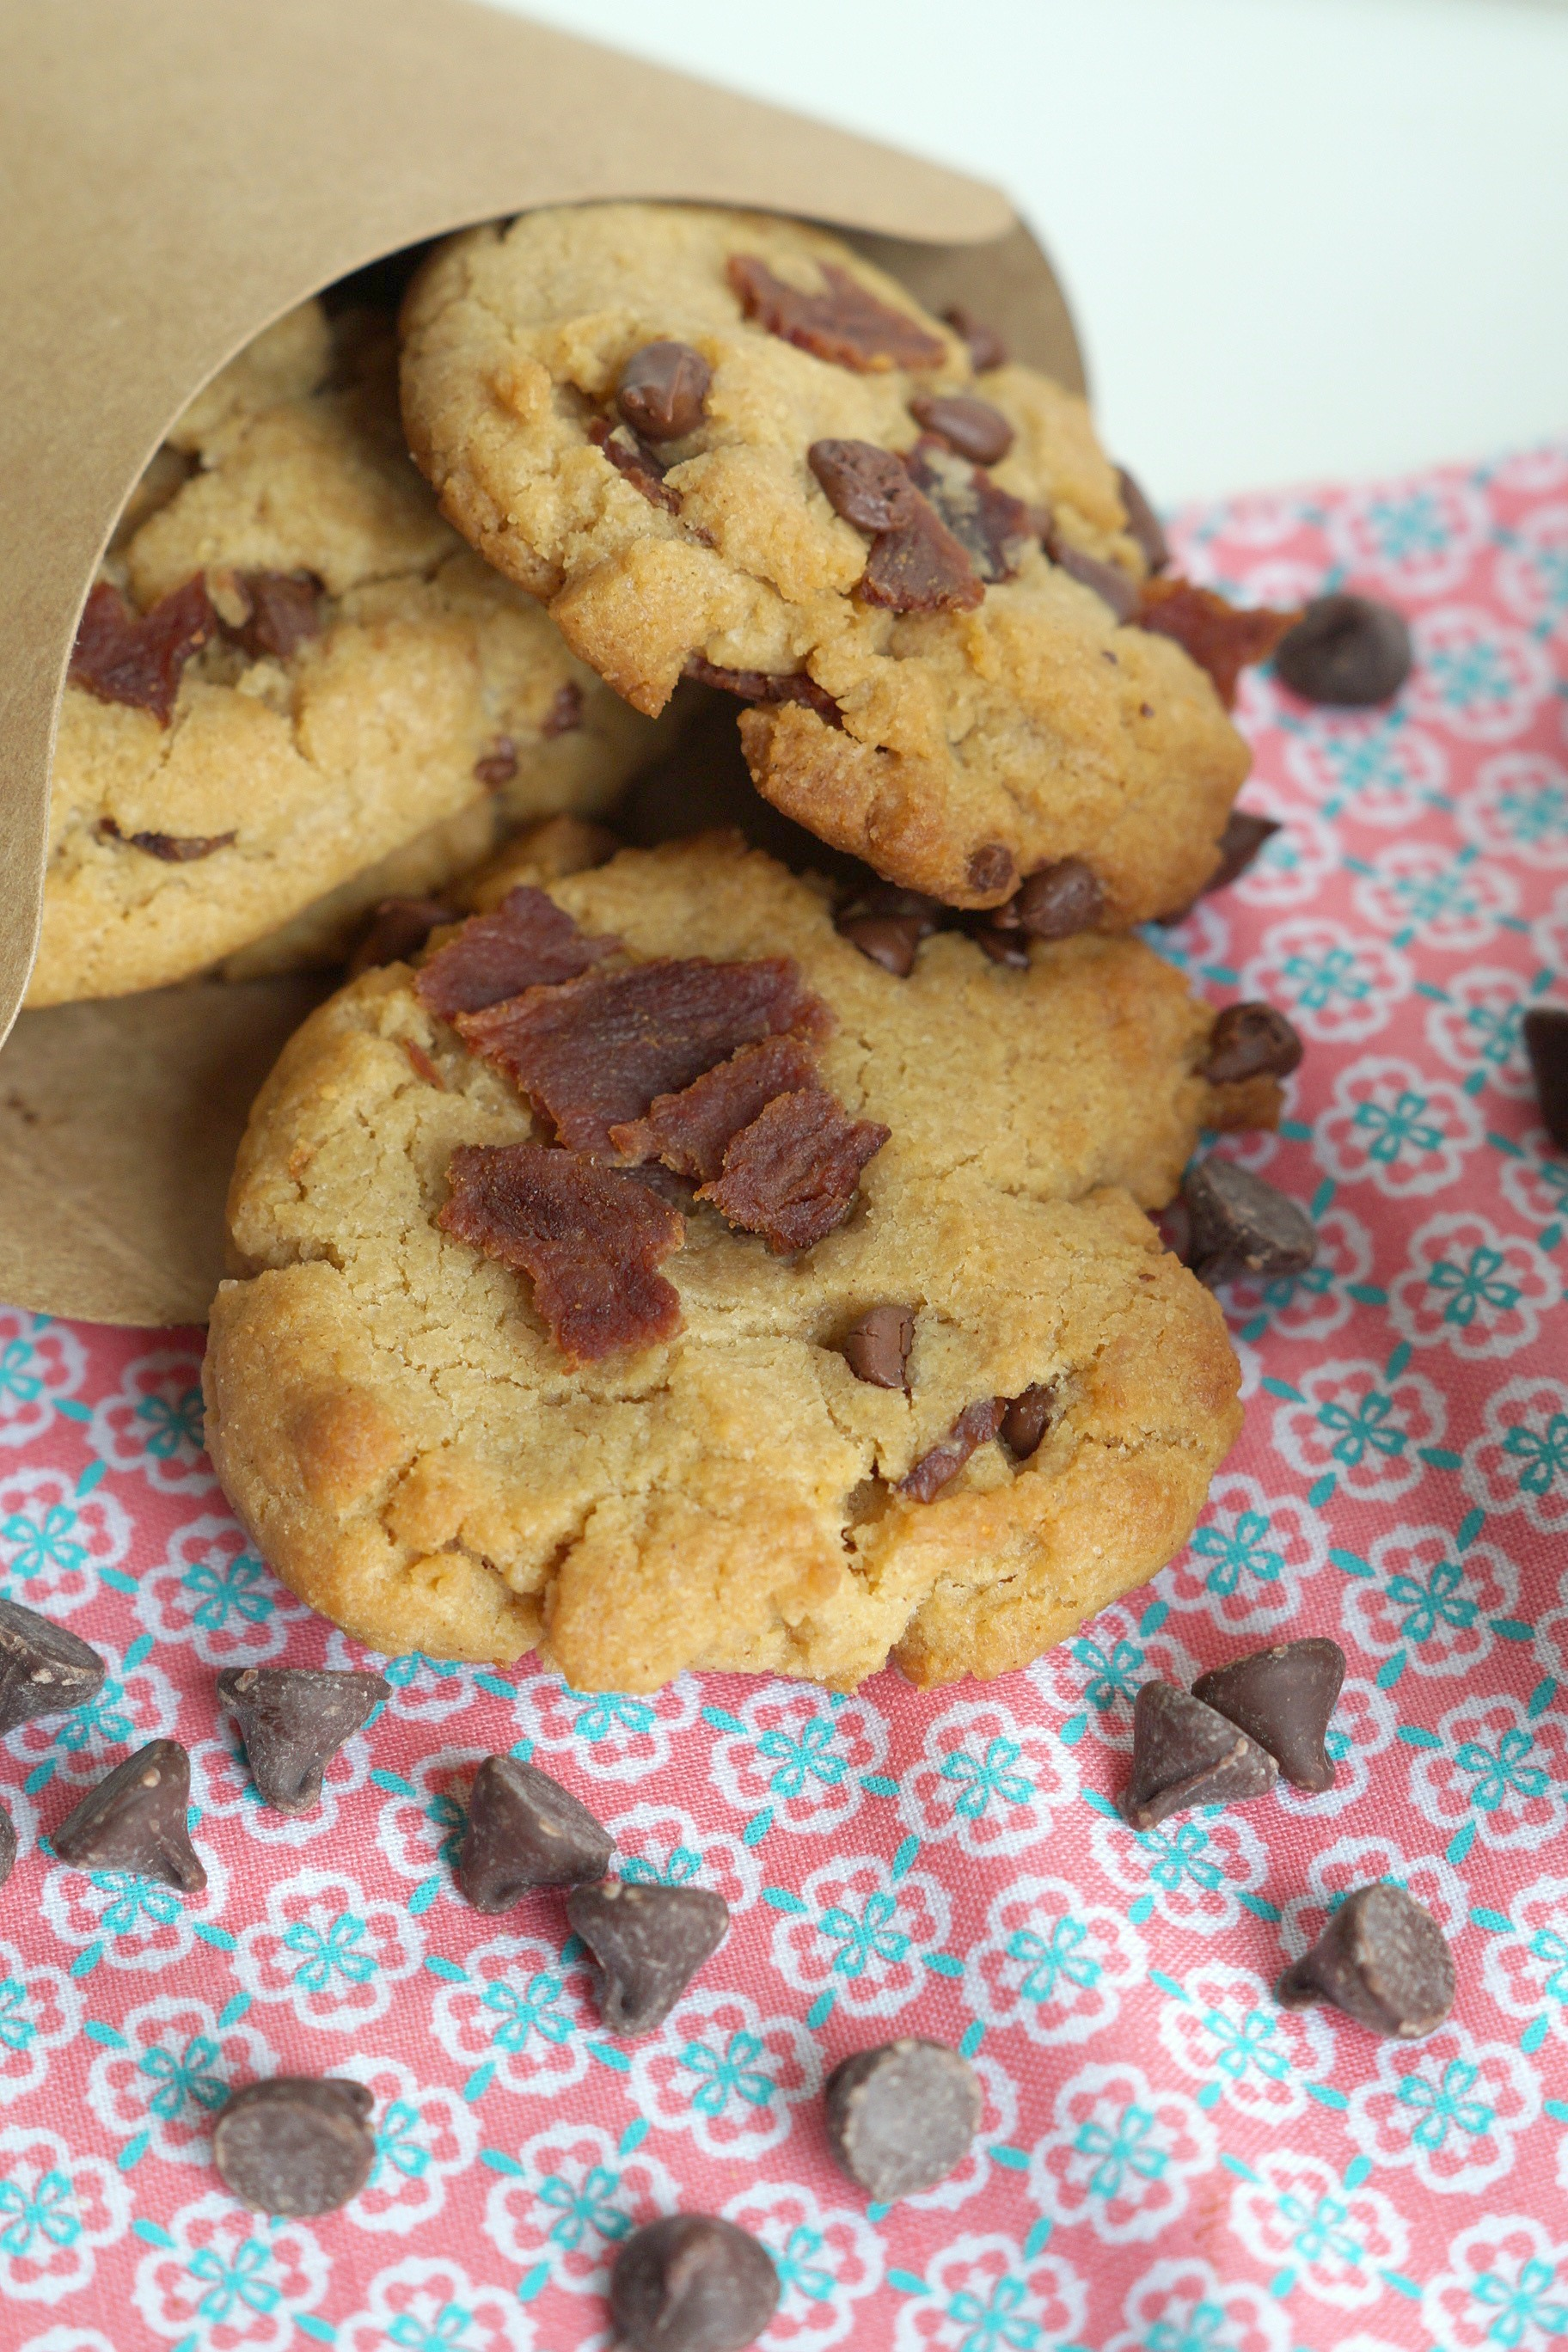 Follow this simple recipe for Peanut Butter Chocolate Chip Bacon Cookies and it's easy to #ServeUpSummer all year long! AD